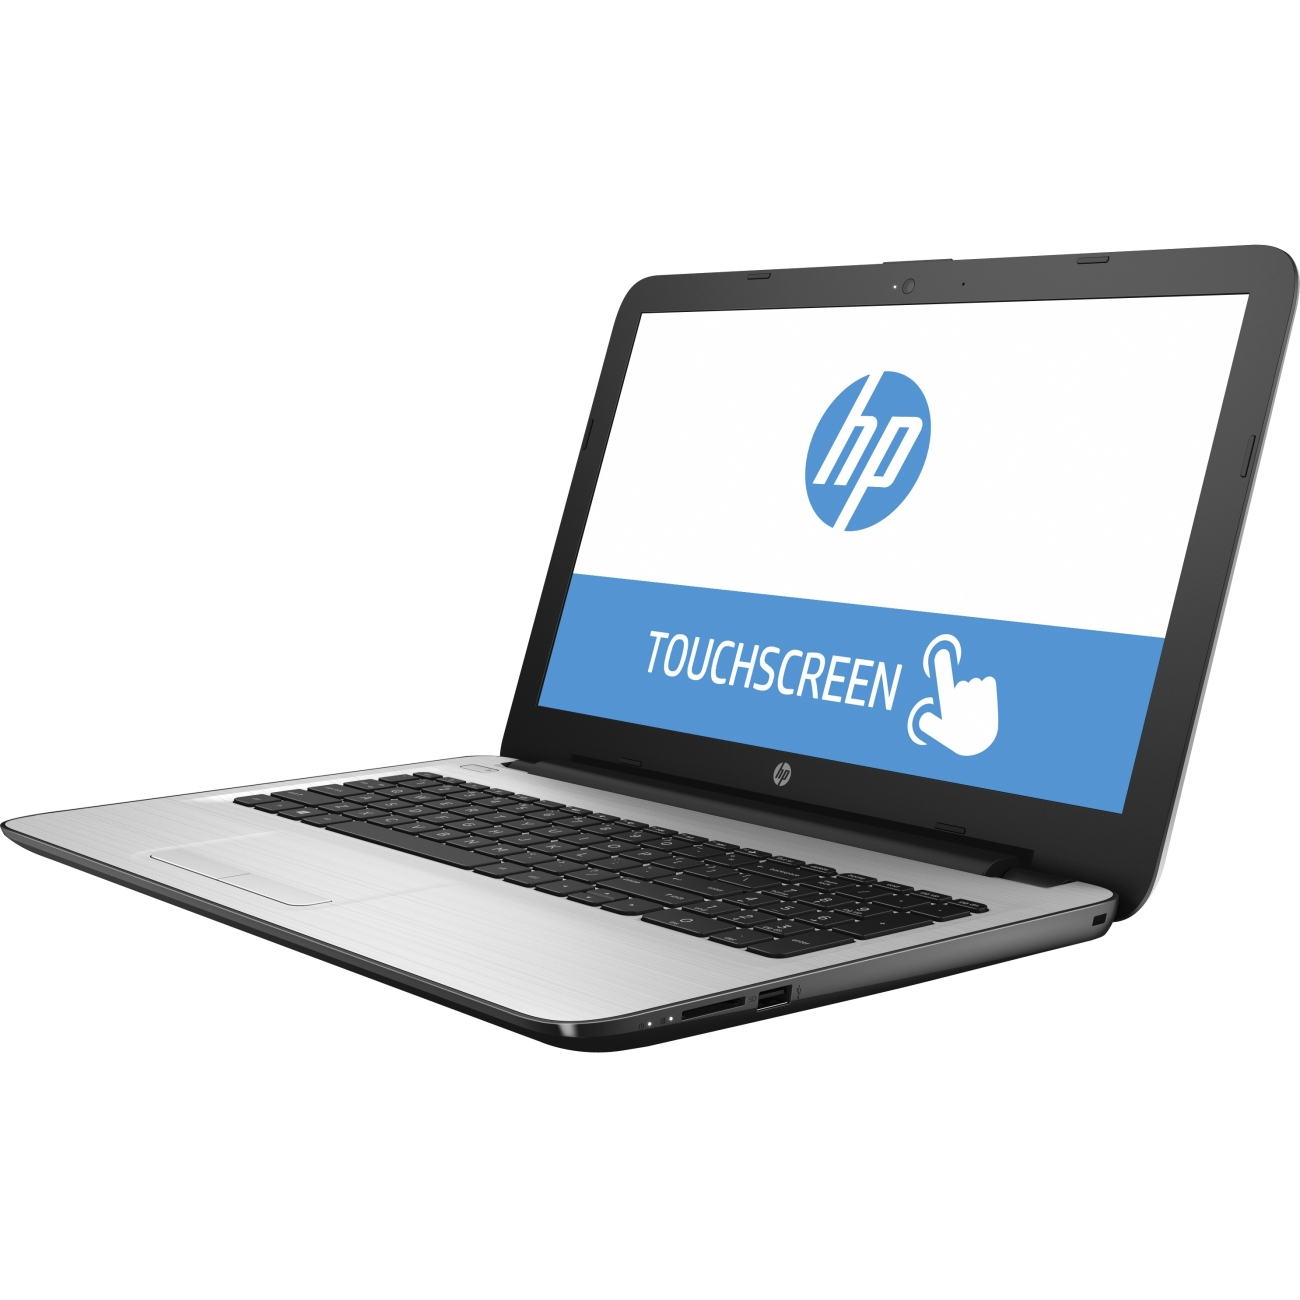 "Hp 15-ba000 15-ba083nr 15.6"" Touchscreen Notebook - Amd A-series A8-7410 Quad-core [4 Core] 2.20 Ghz - White - 4 Gb Ram - 1 Tb Hdd - Amd Radeon R5 Graphics - Windows 10 Home - 1366 X 768 (x0h93ua-aba)"